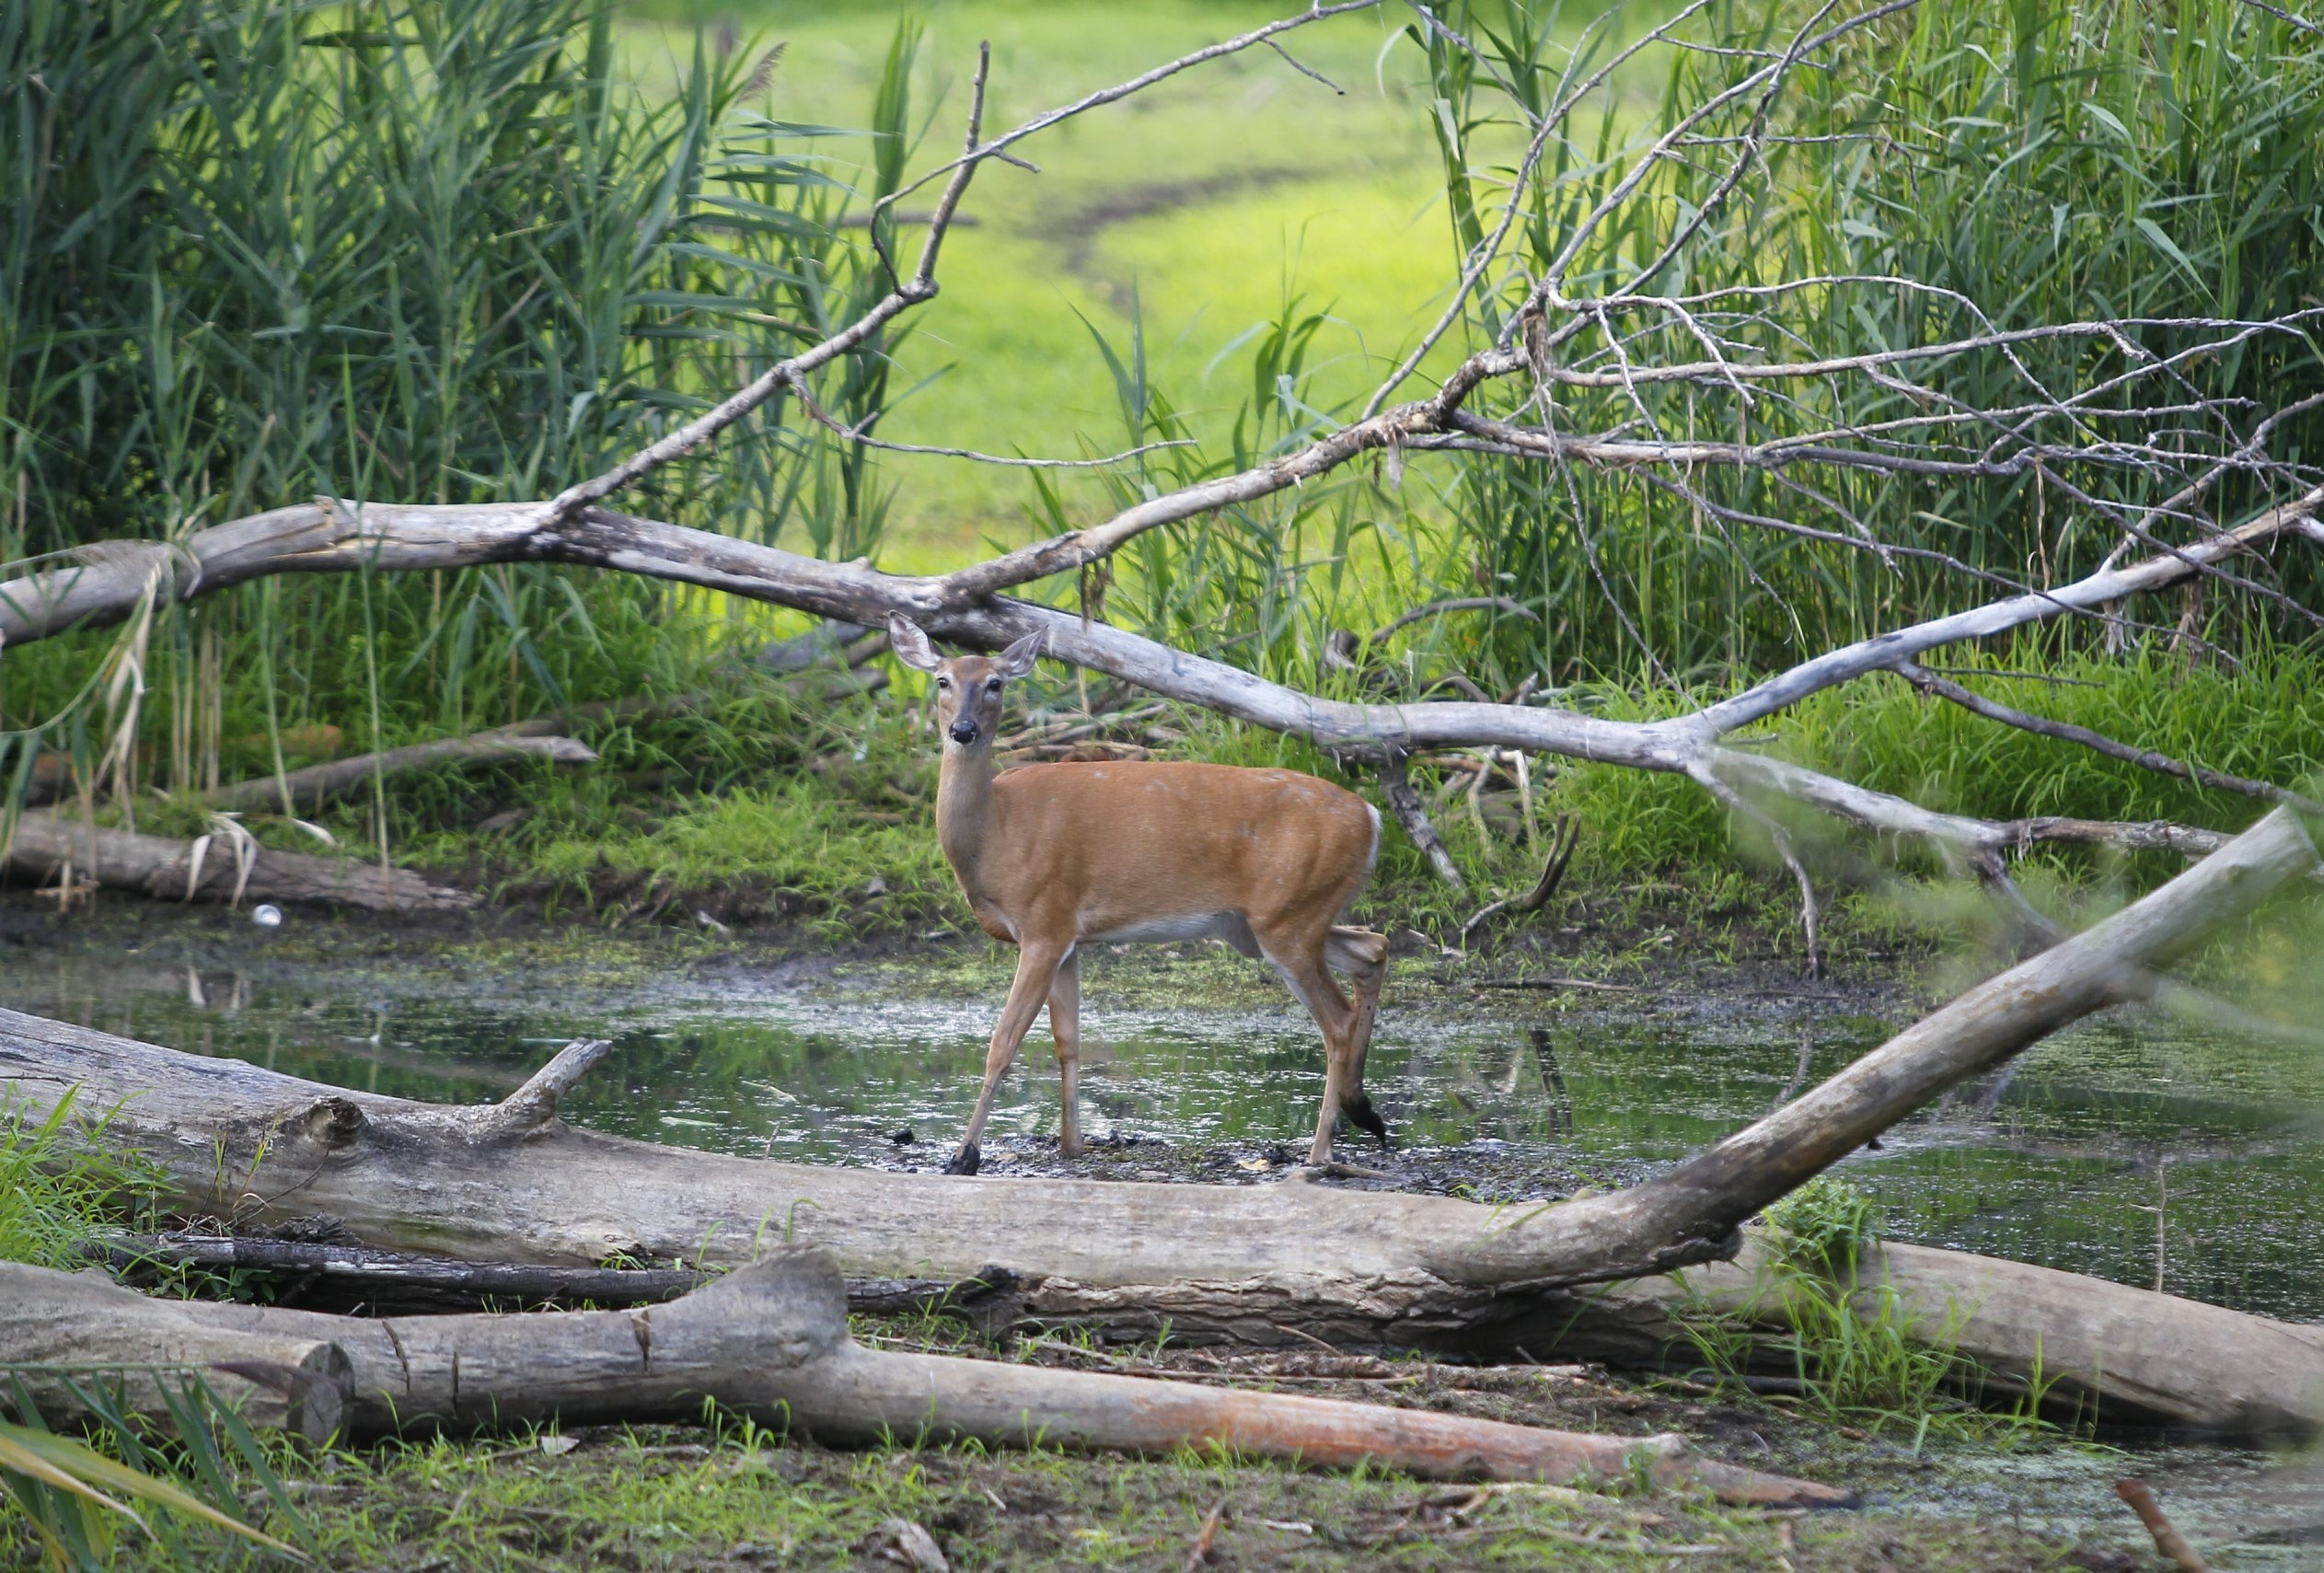 Outdoors notebook: Deer myths, walleye tracking and more